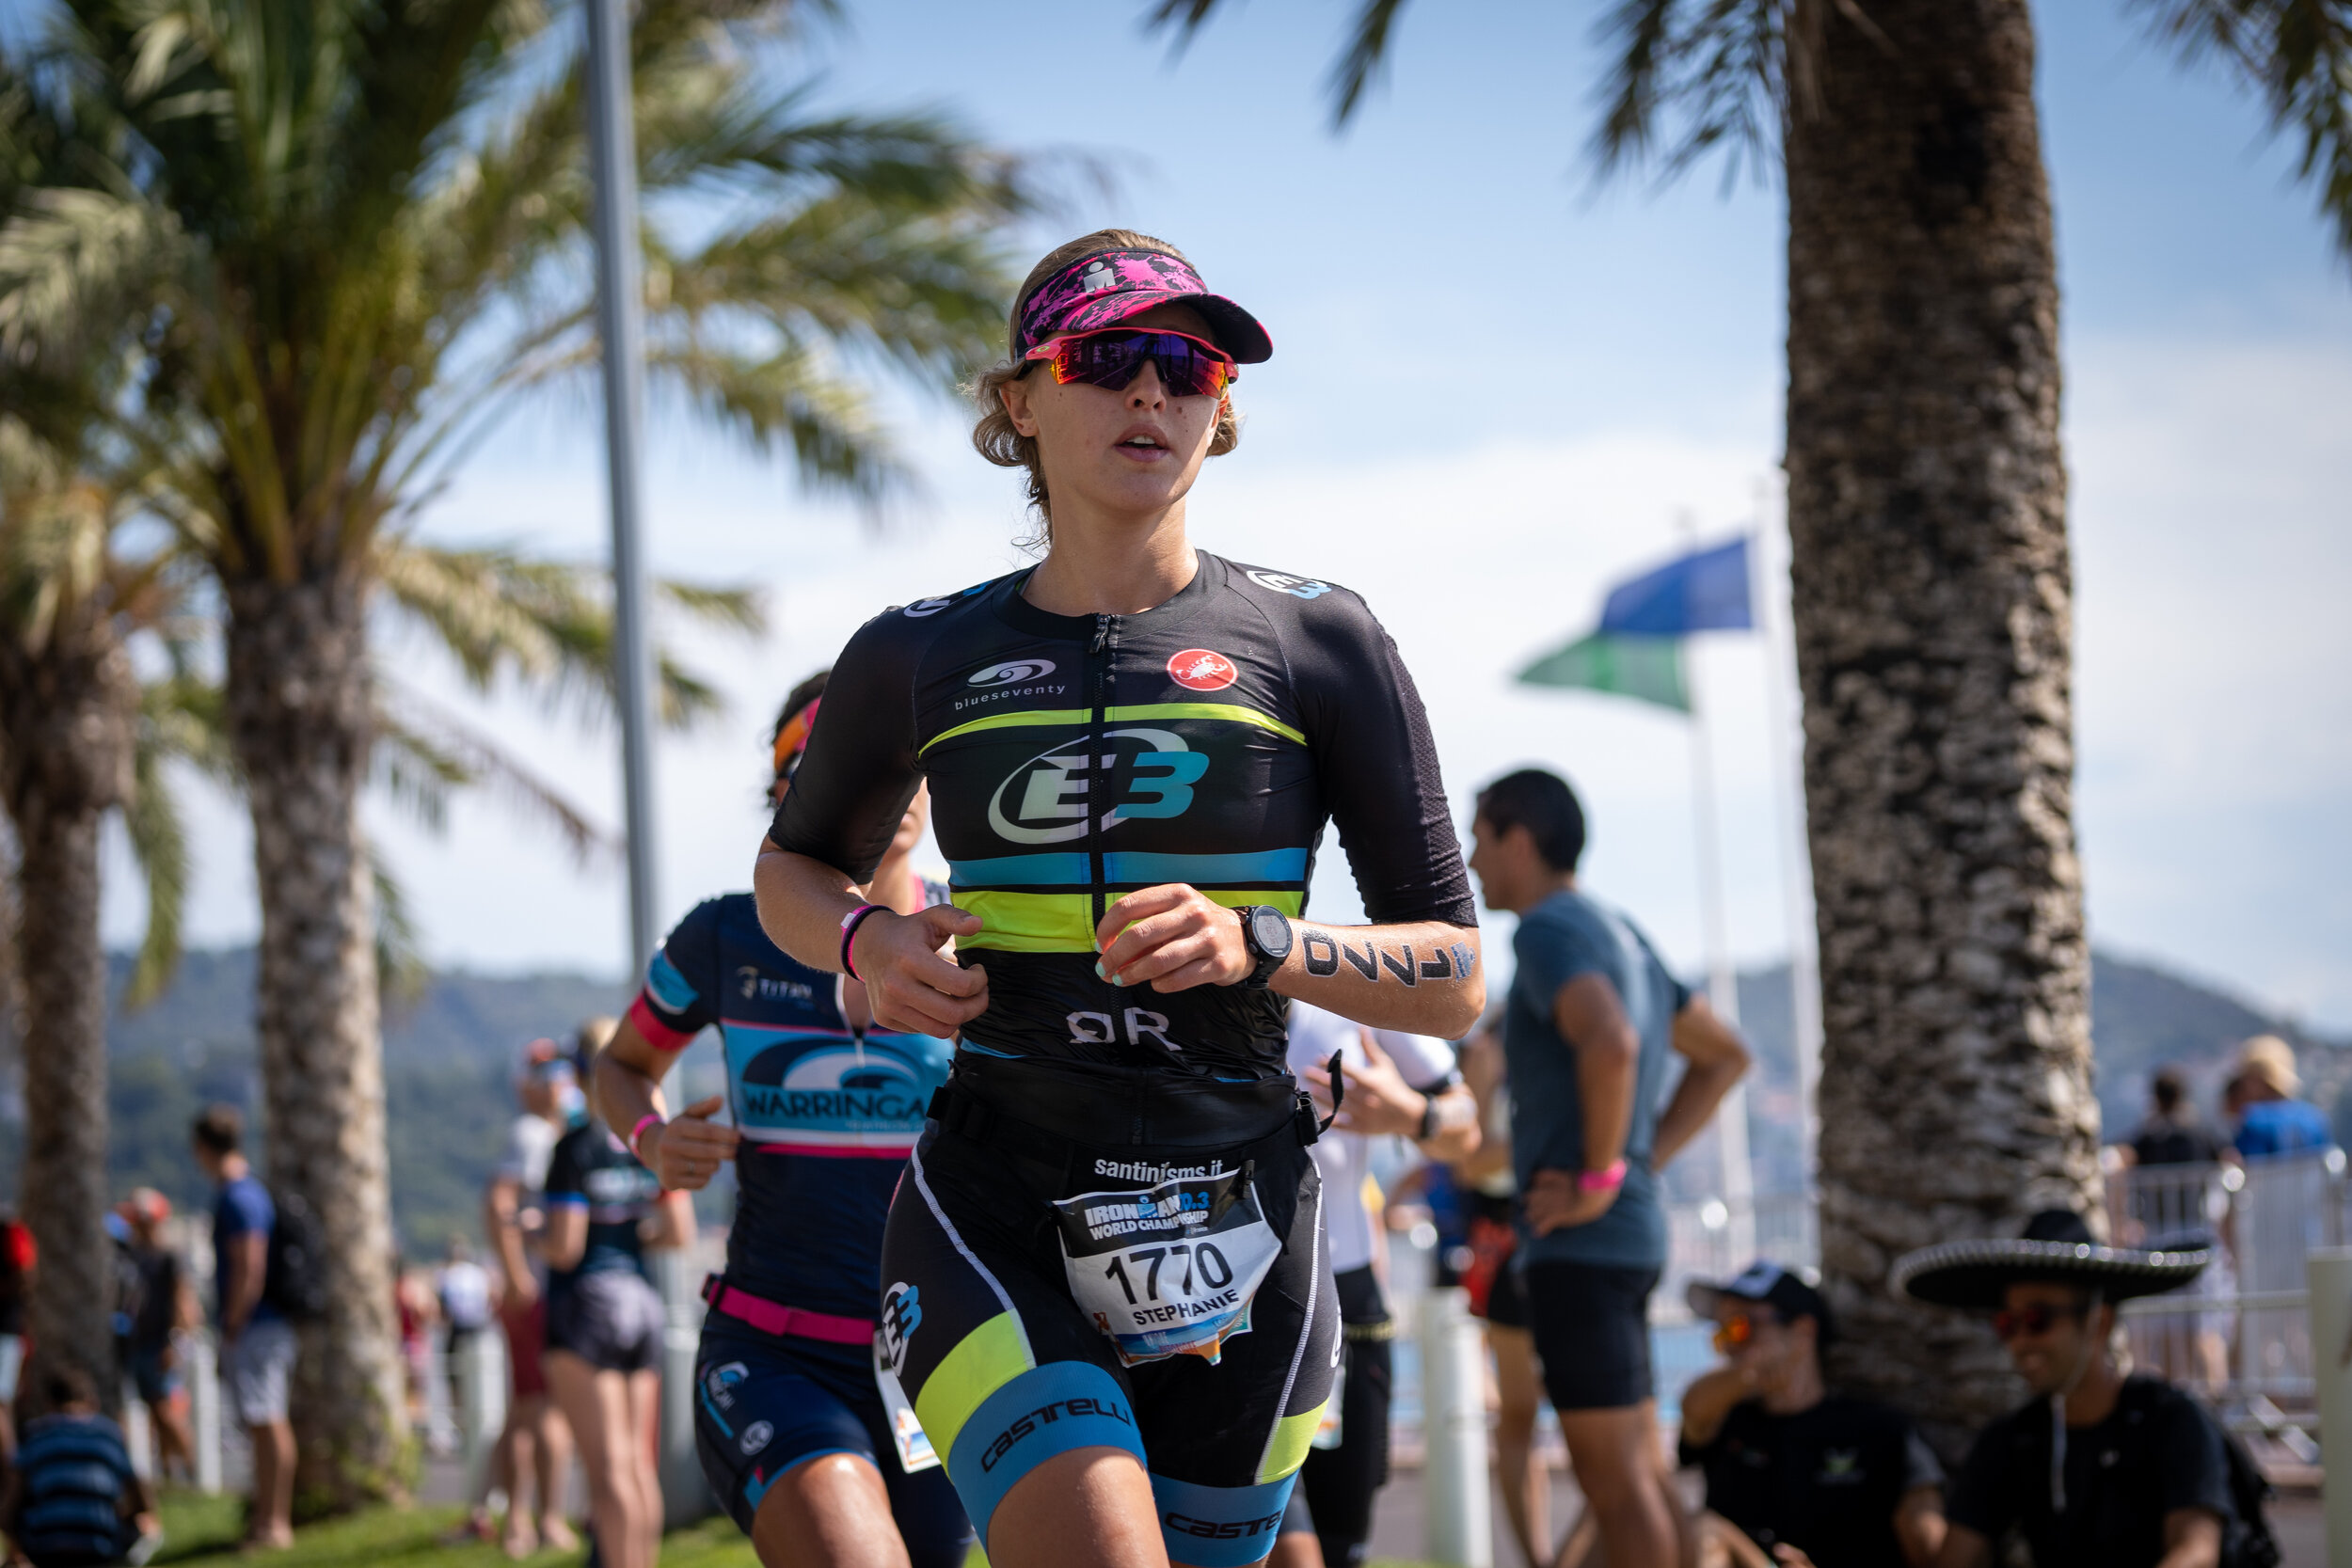 Ironman 70.3 World Championship 2014 Qualifiers